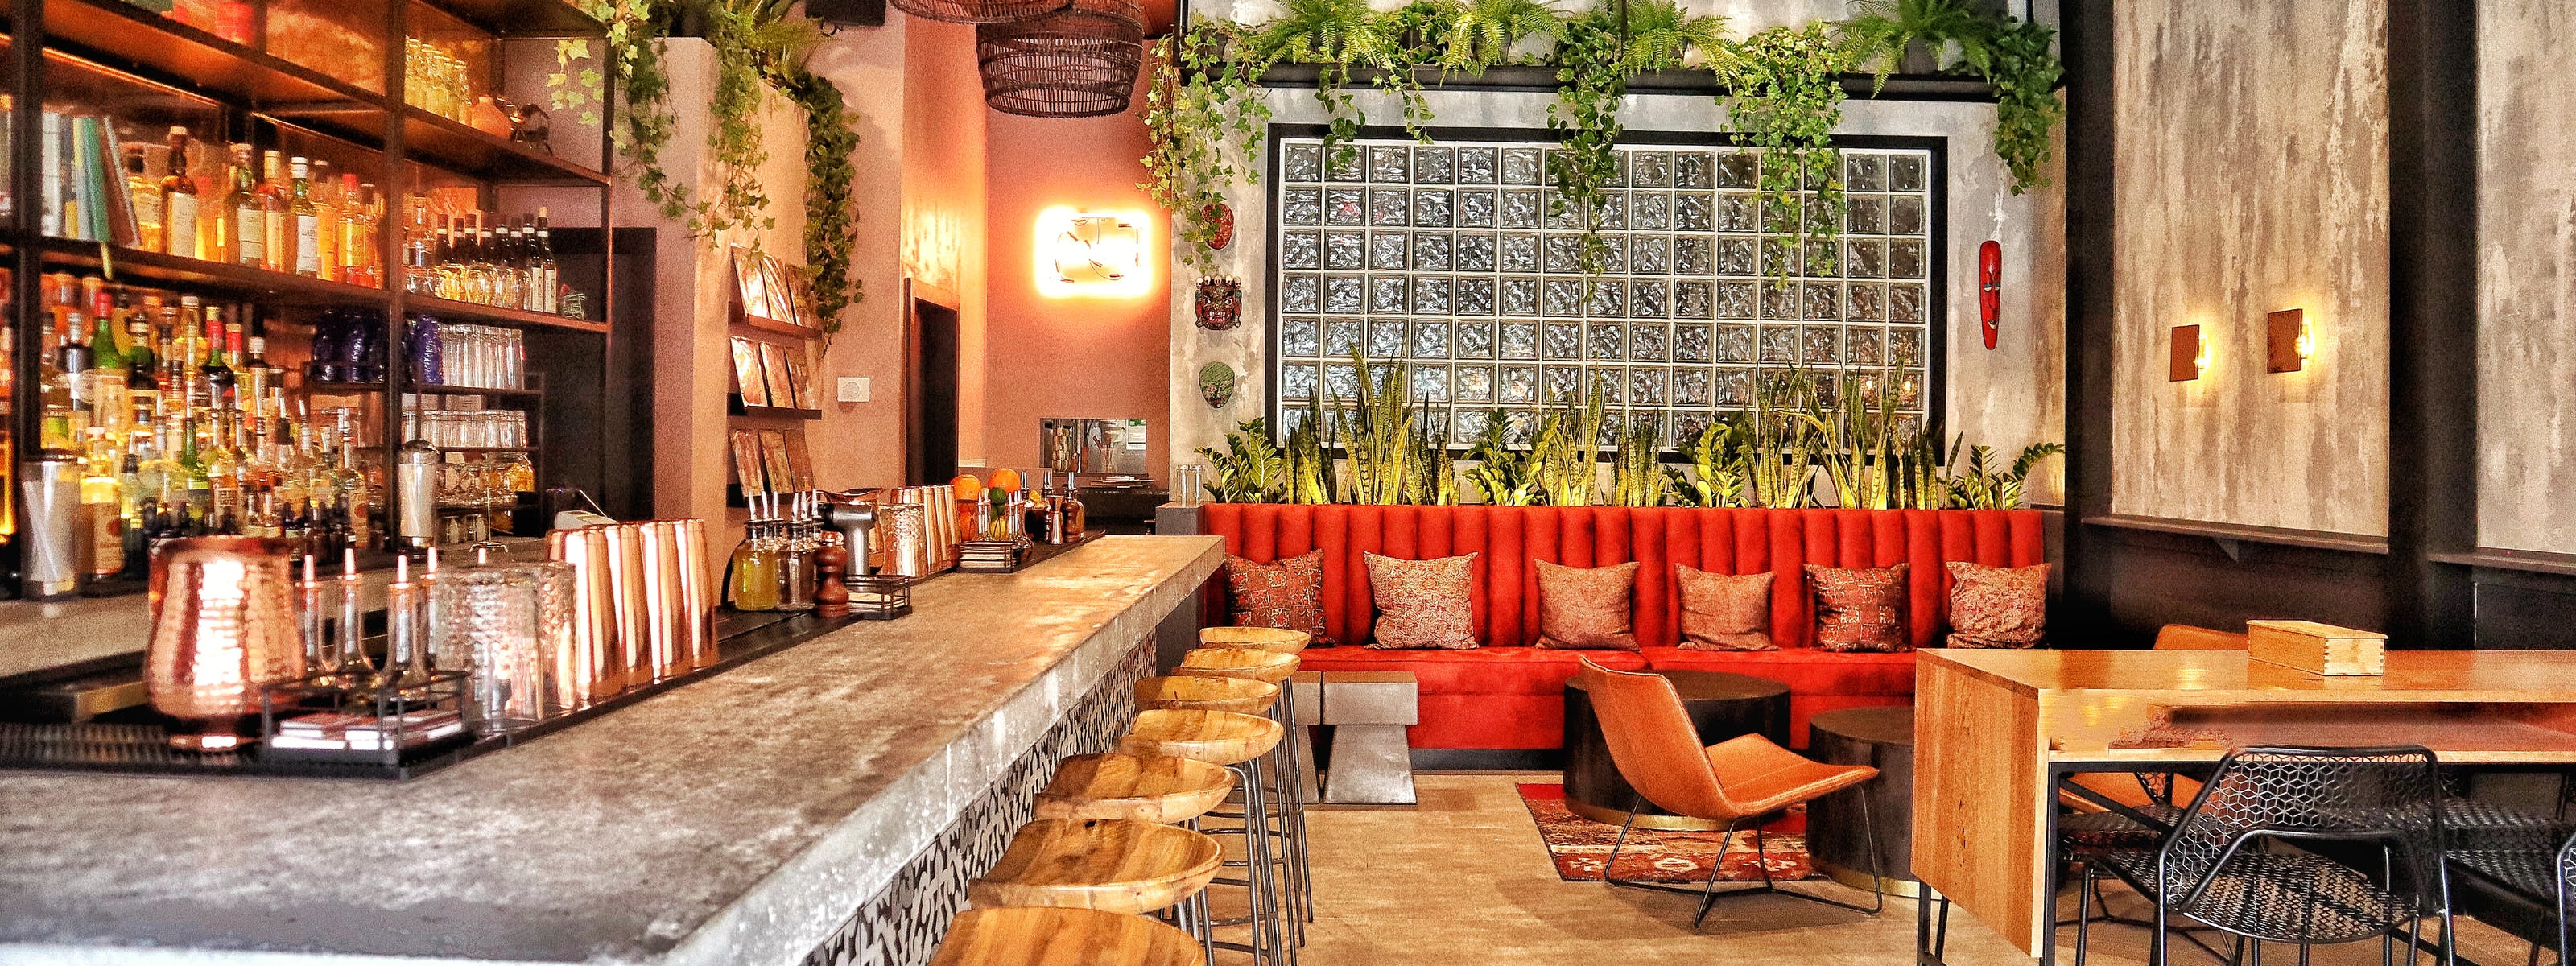 10 Great Asian-Owned Bars In NYC - New York - The Infatuation